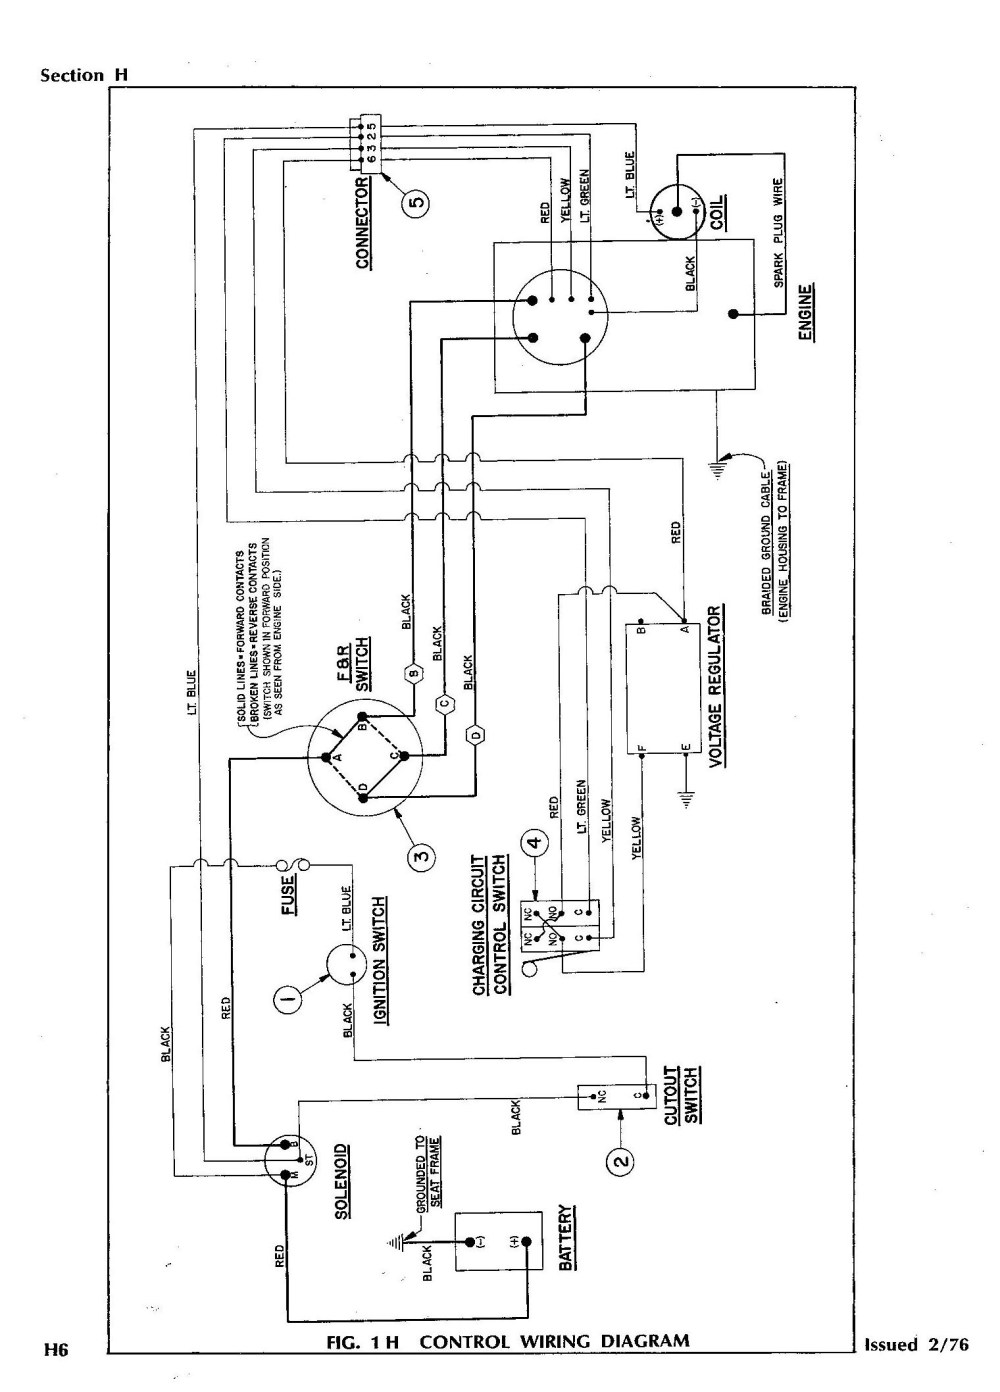 medium resolution of 1990 ezgo gas wiring diagram wiring diagram third level 1989 ezgo marathon wiring diagram 1990 ezgo gas wiring diagram